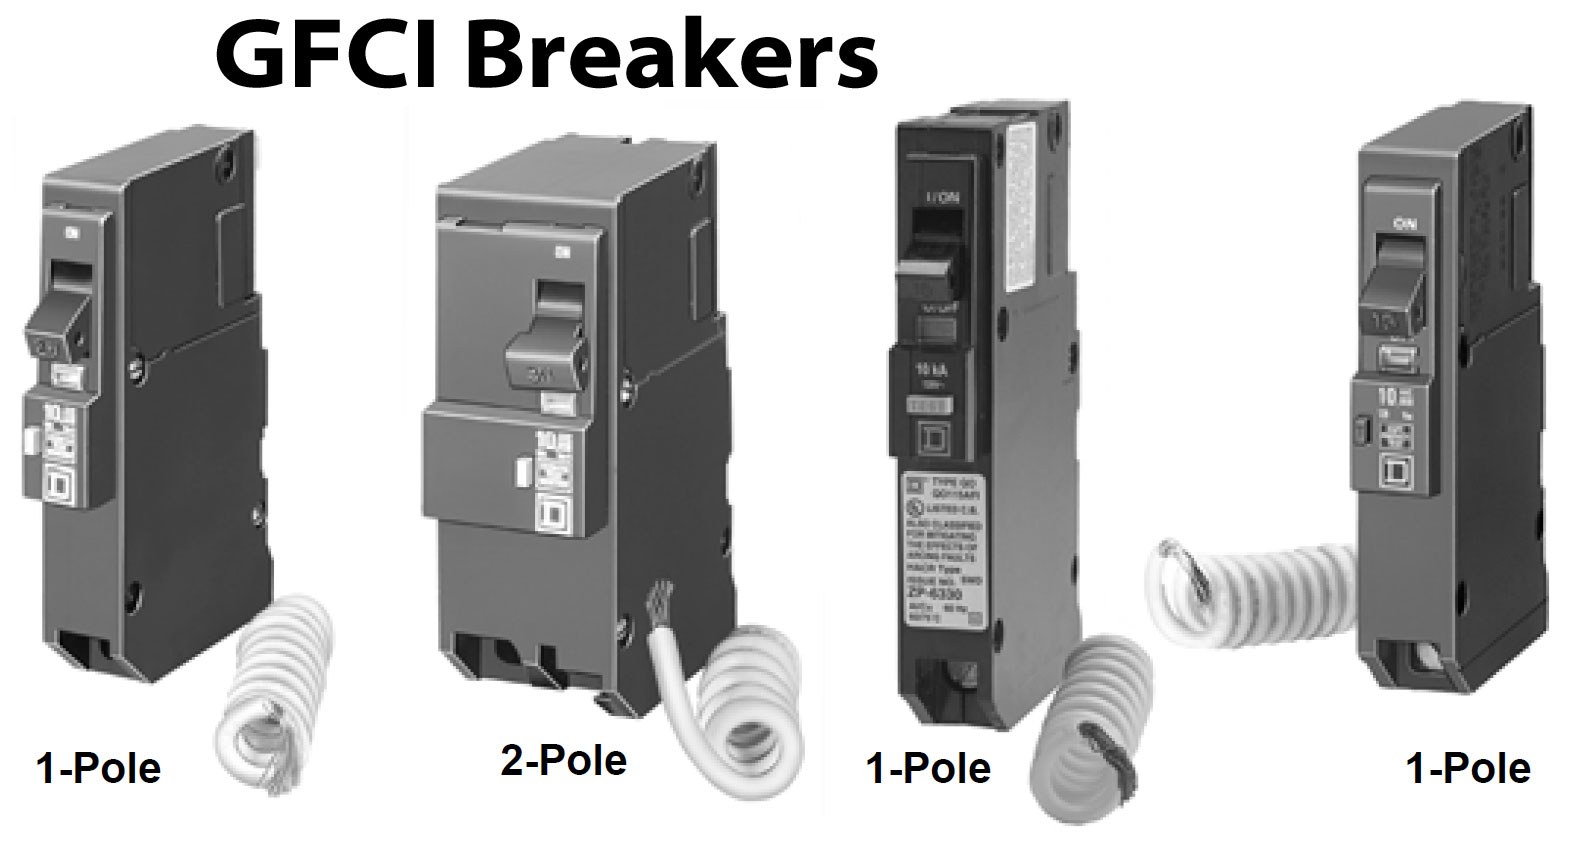 GFCI breakers 1000 how to wire gfci afci circuit breaker 2 pole gfci breaker wiring diagram at alyssarenee.co